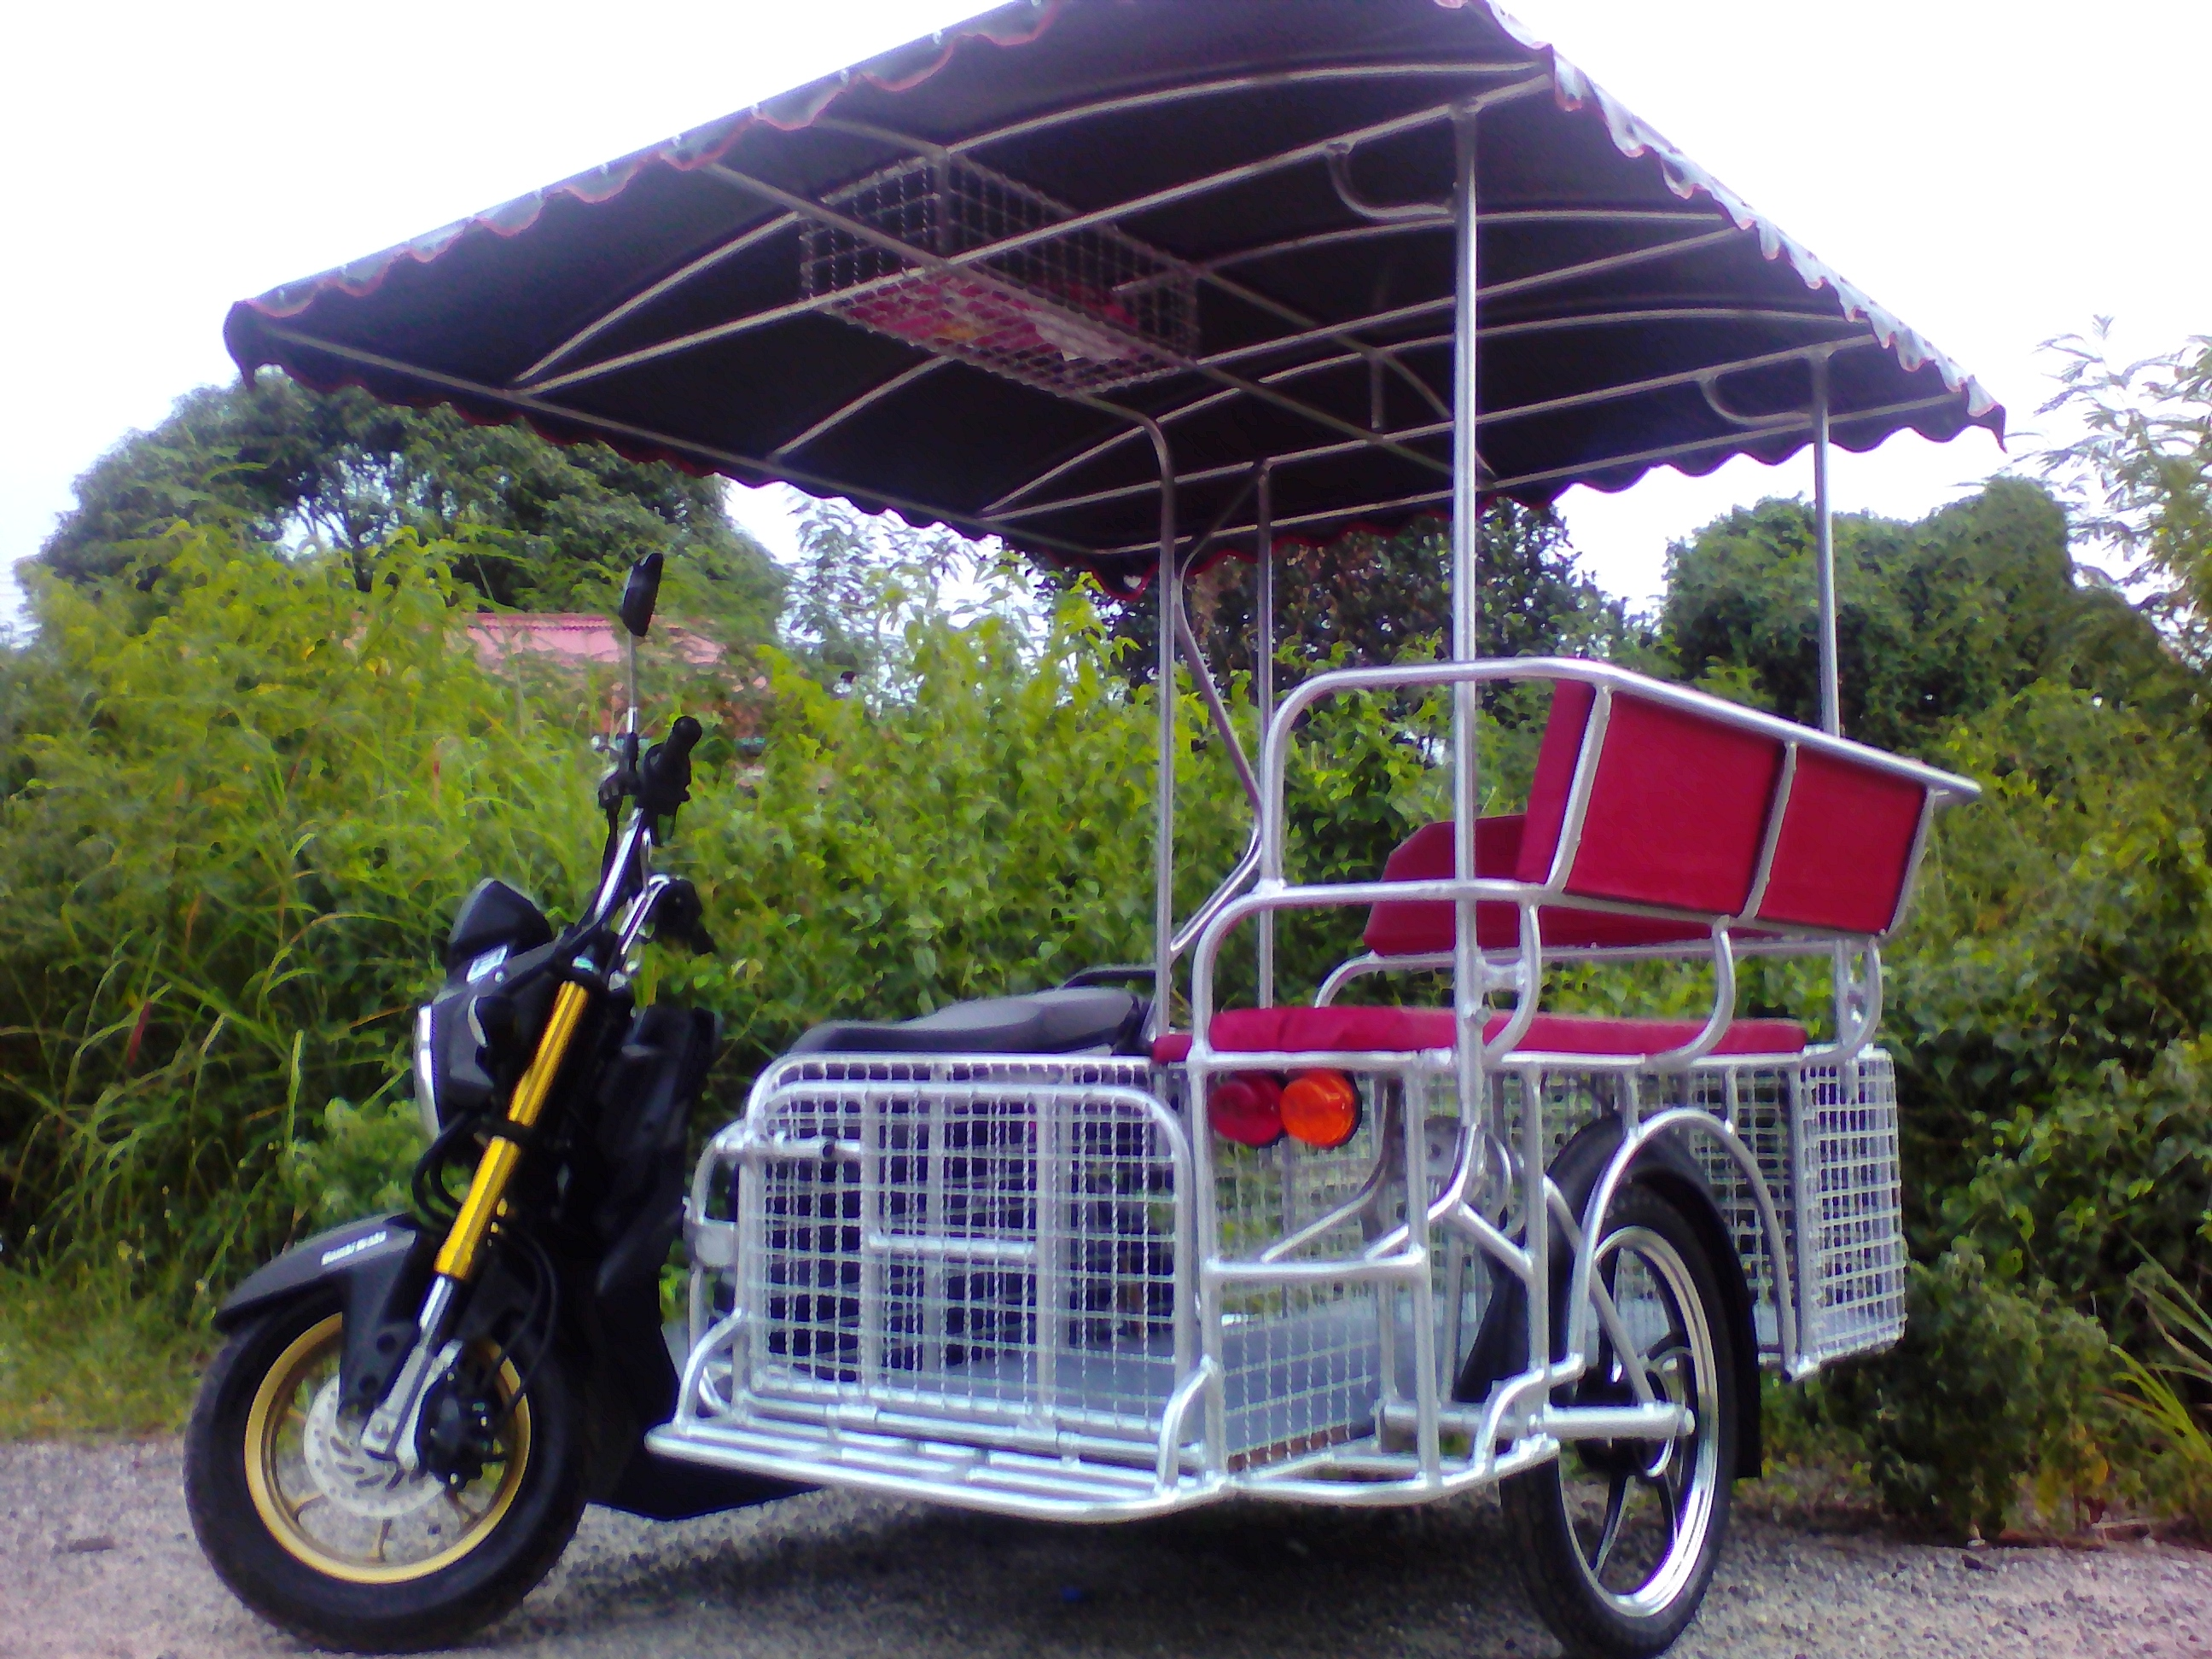 Sidecar for sale - Bikes For Sale (in Thailand) - Thailand ...